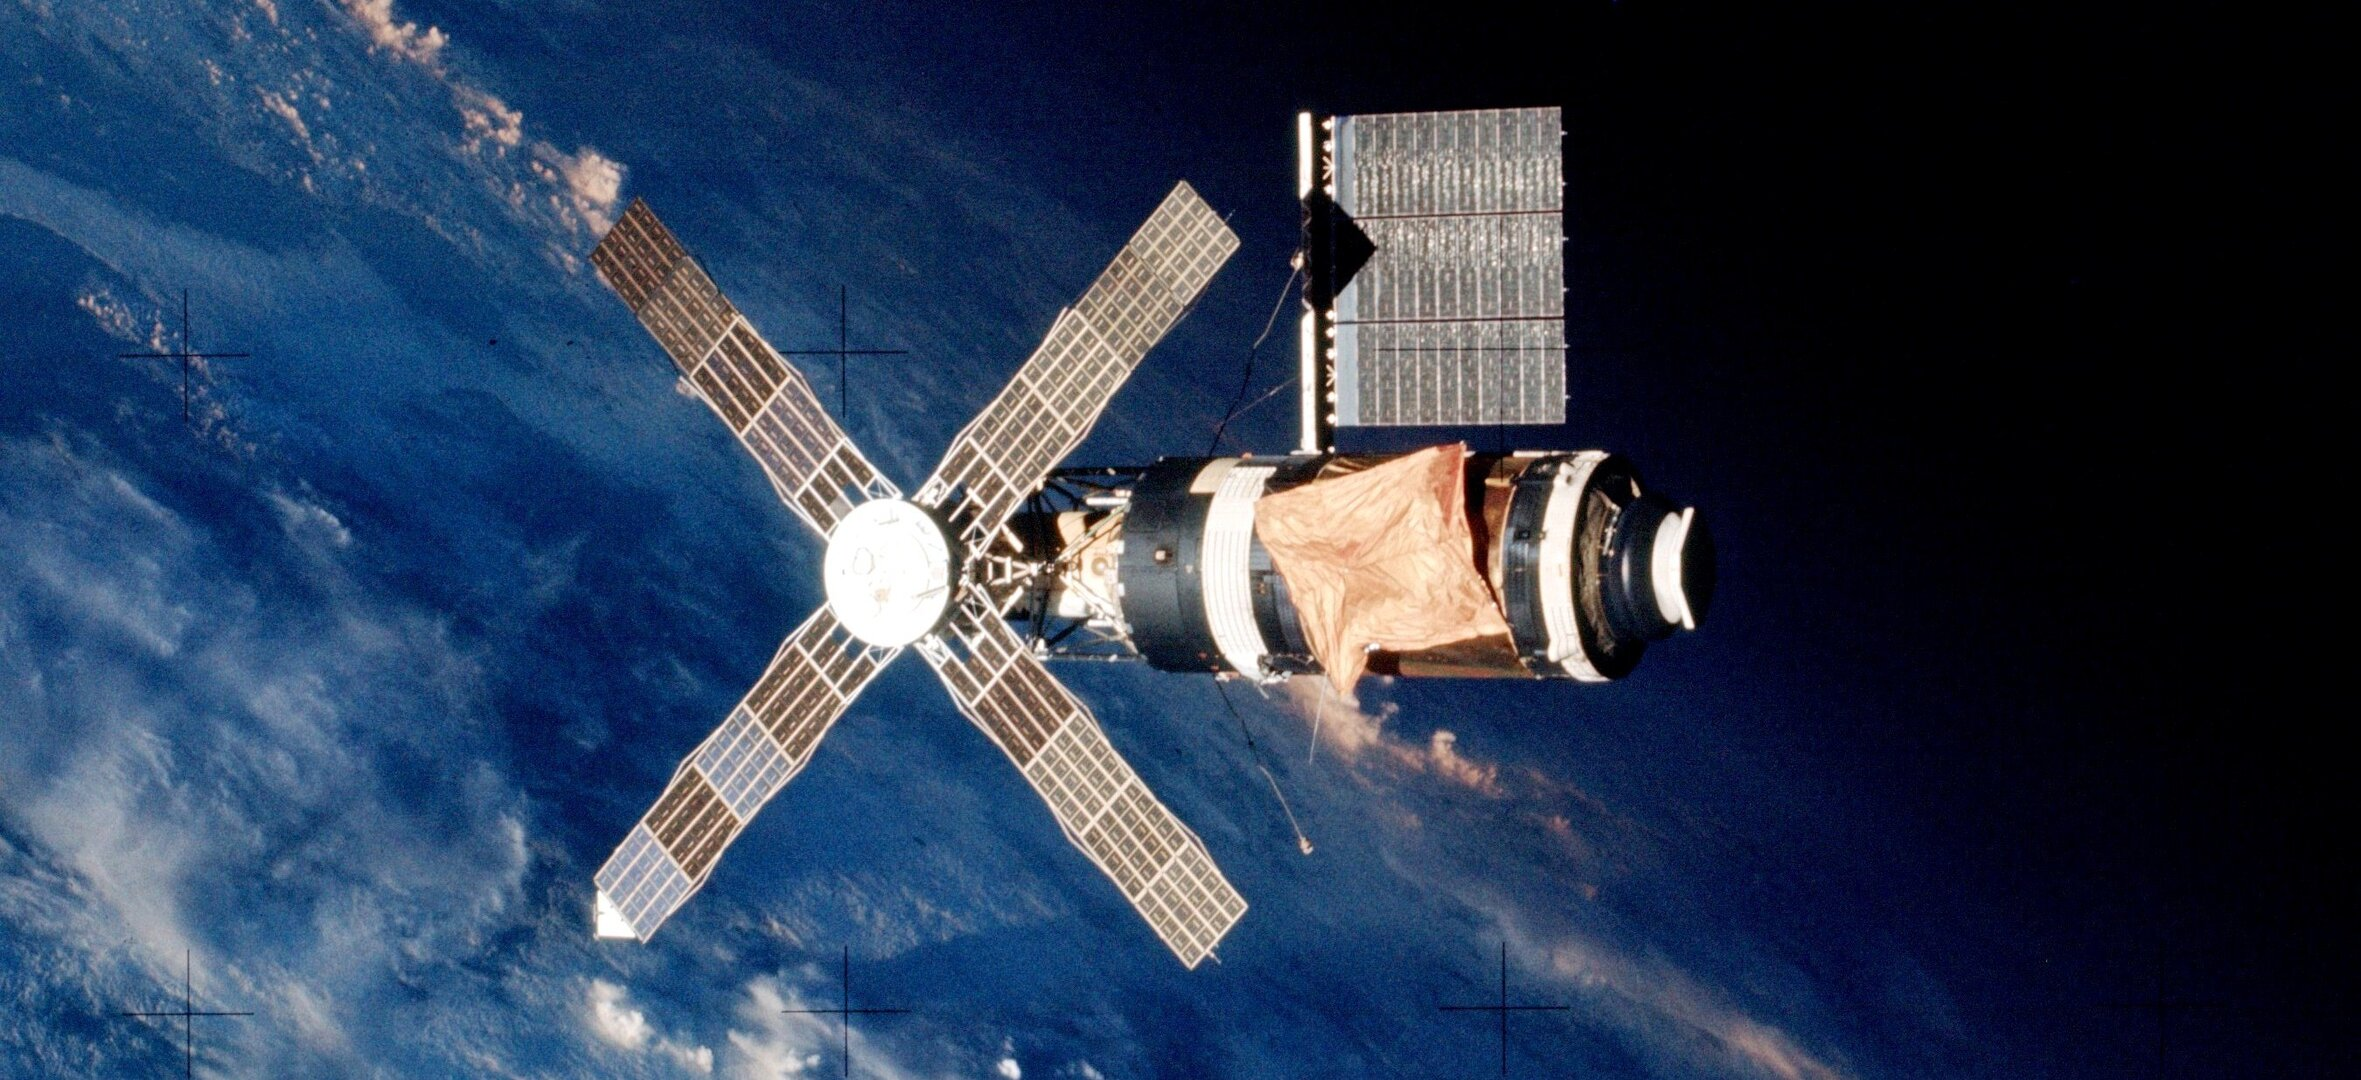 Crew of Skylab 2 departs